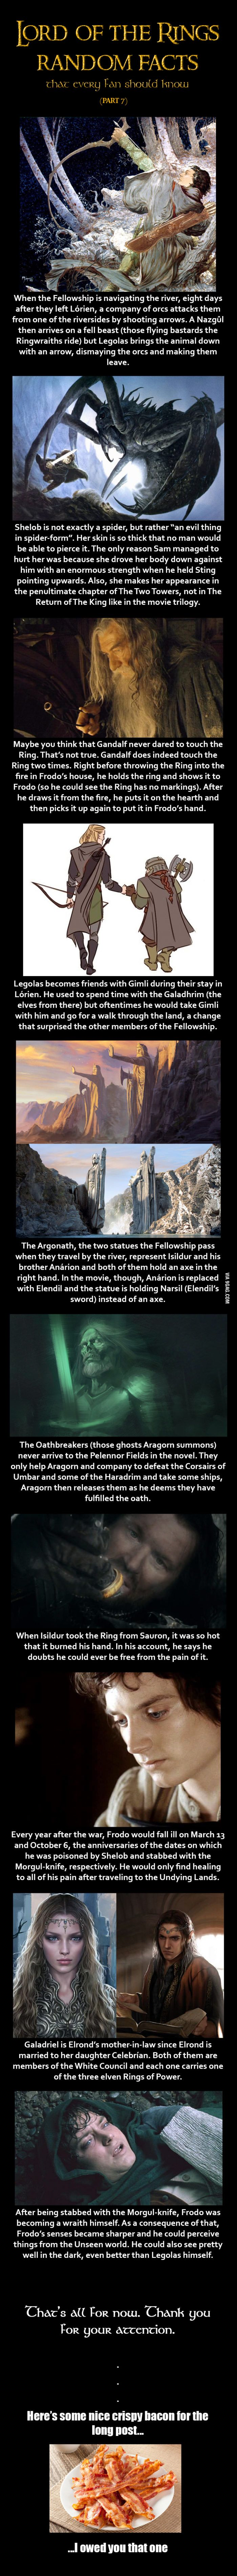 Lotr random facts (7 of 8)